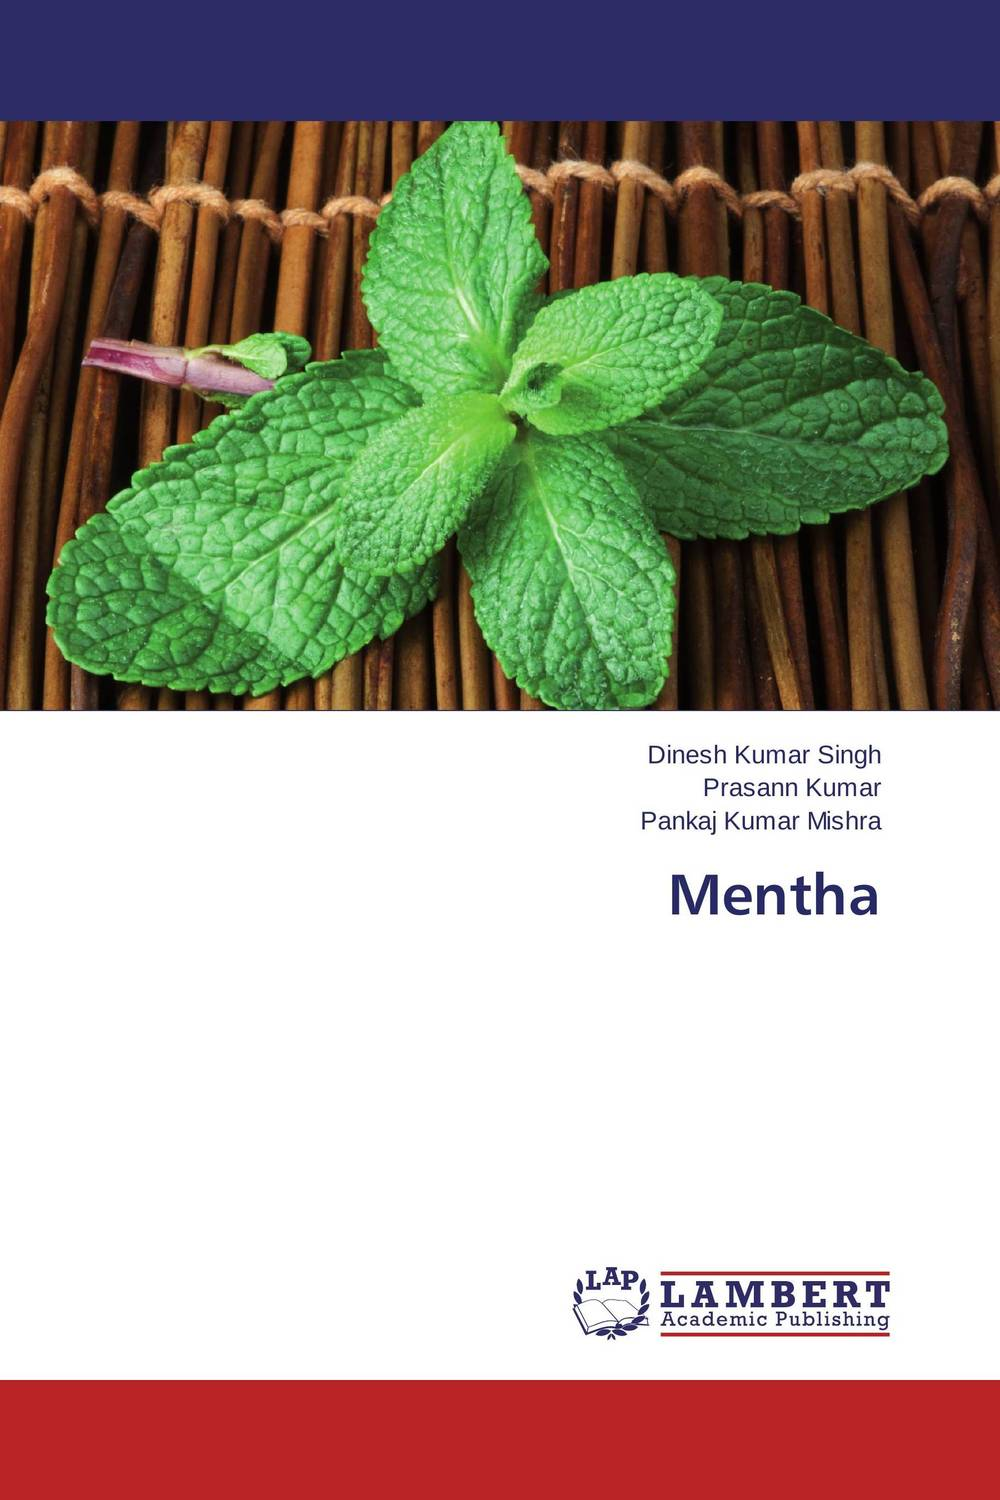 Mentha review of genus cotugnia diamare from maharashtra